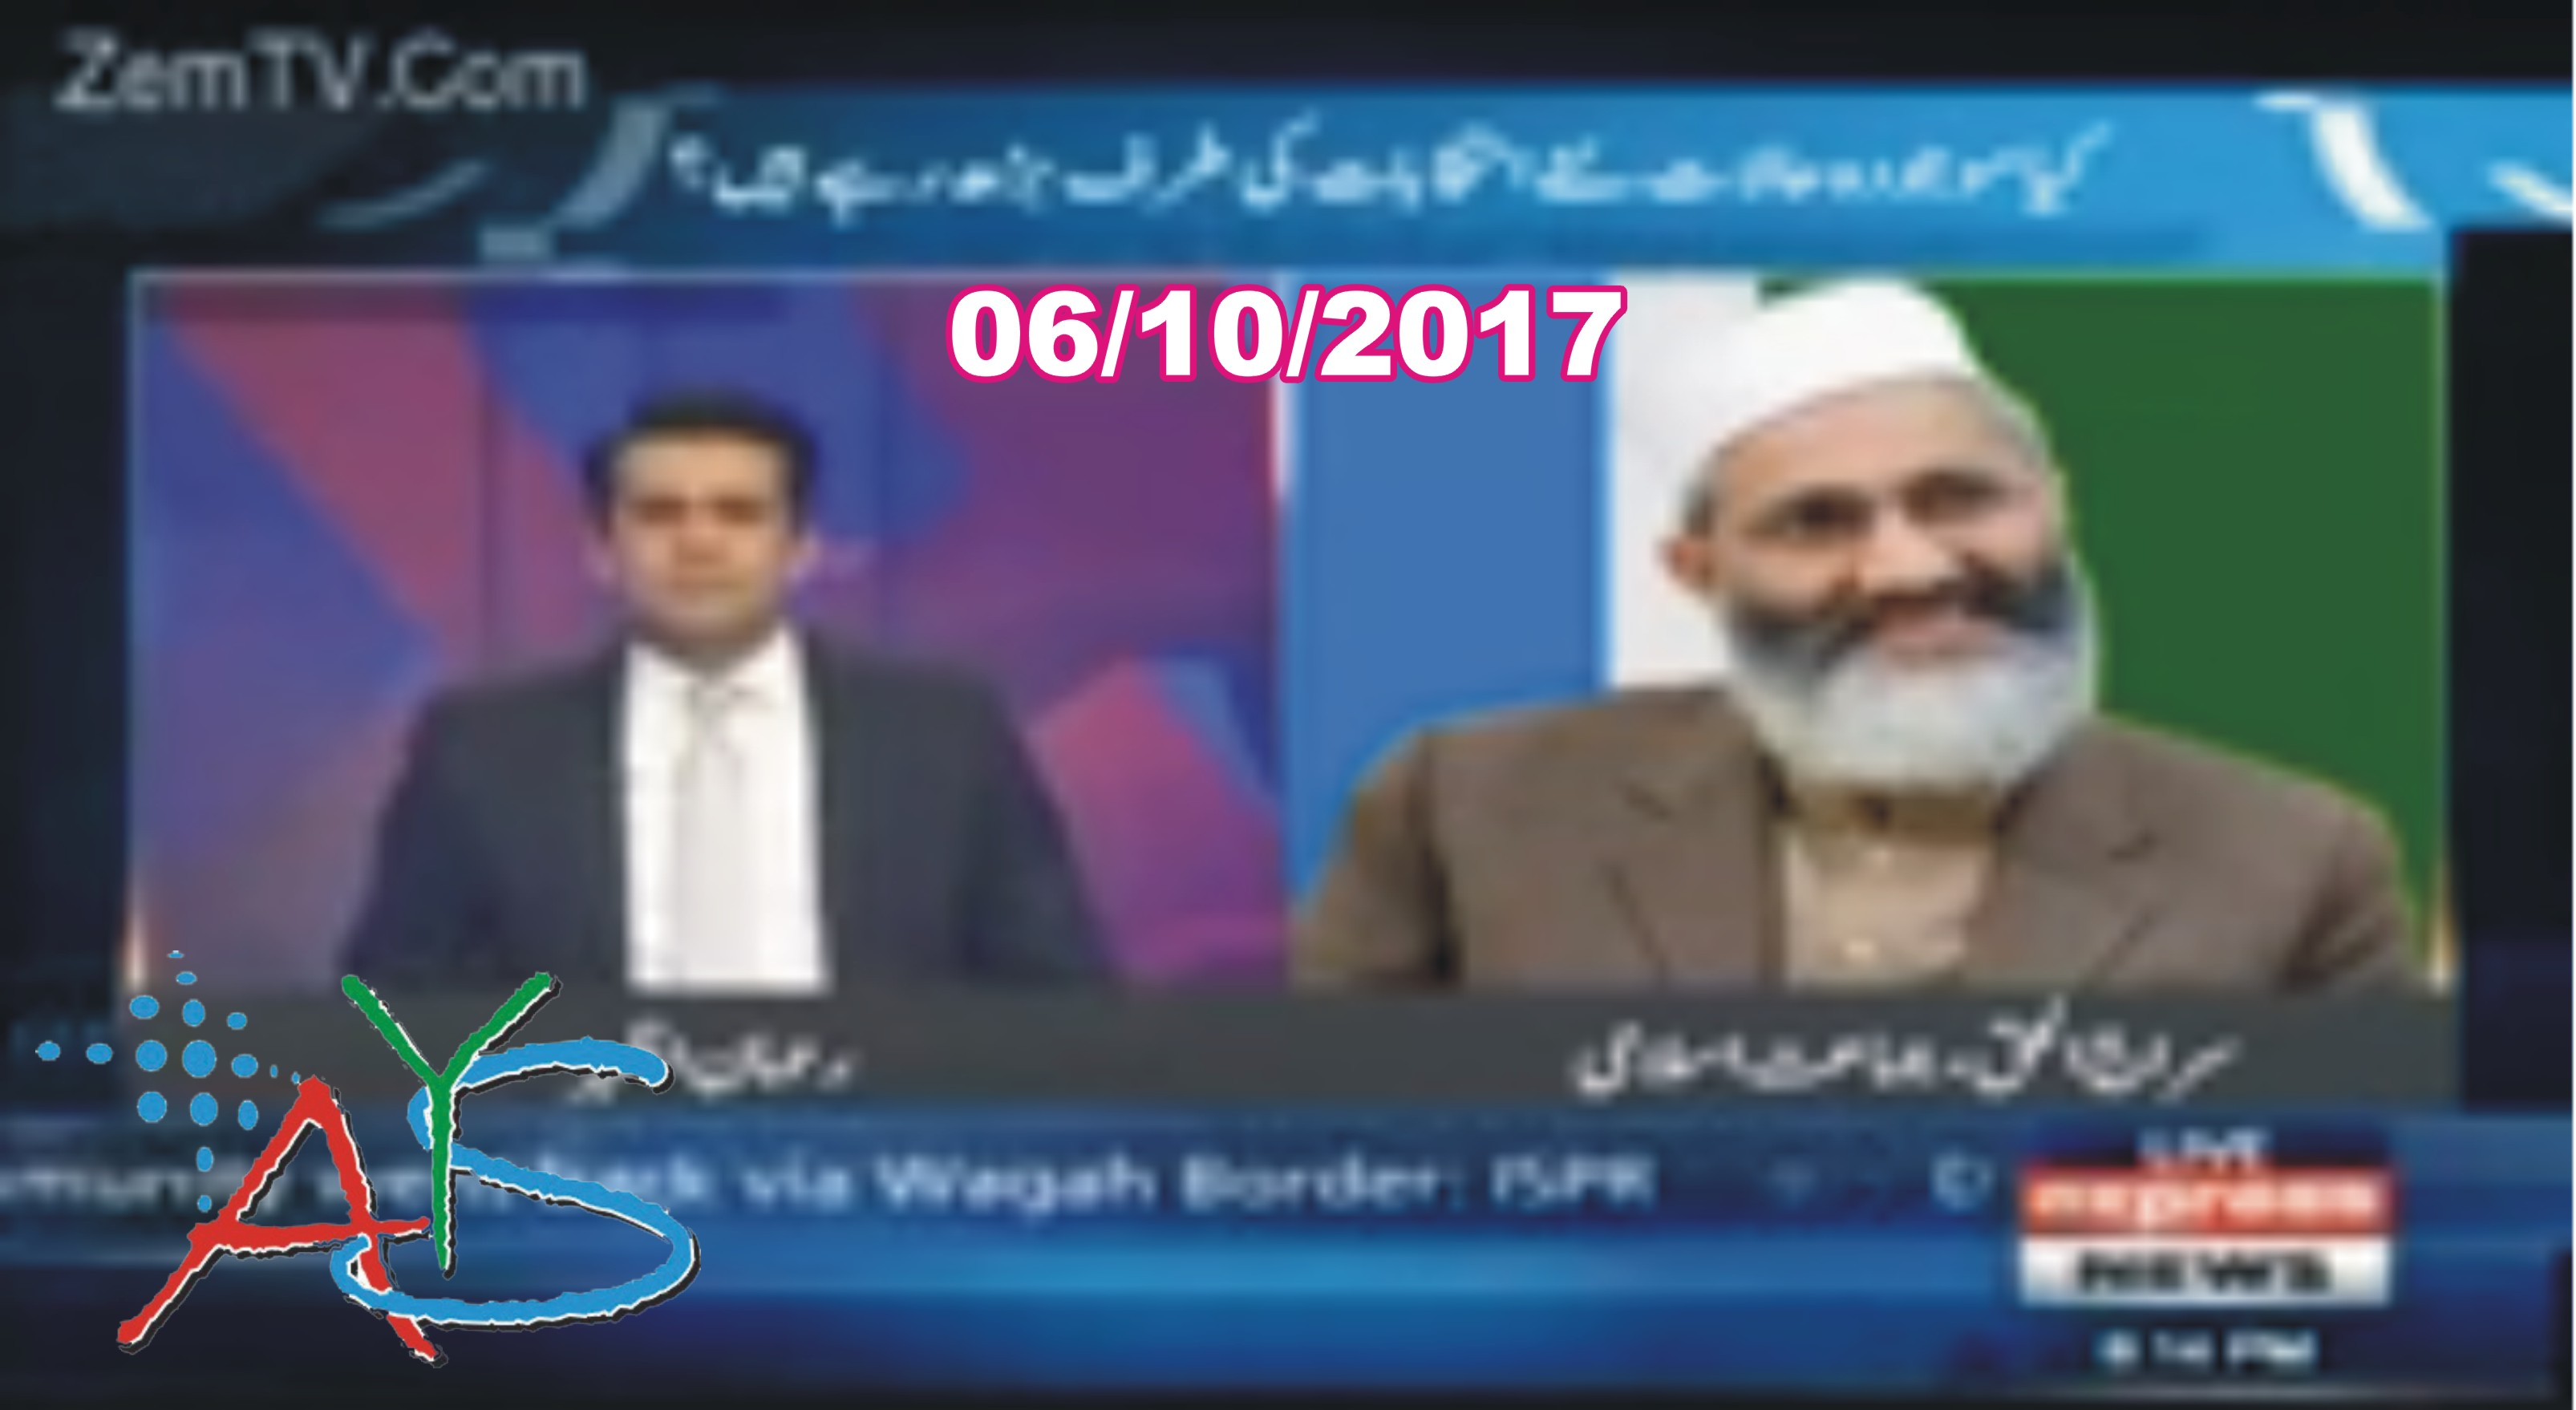 06 Oct 2017 - Naye Election Ki Zarorat